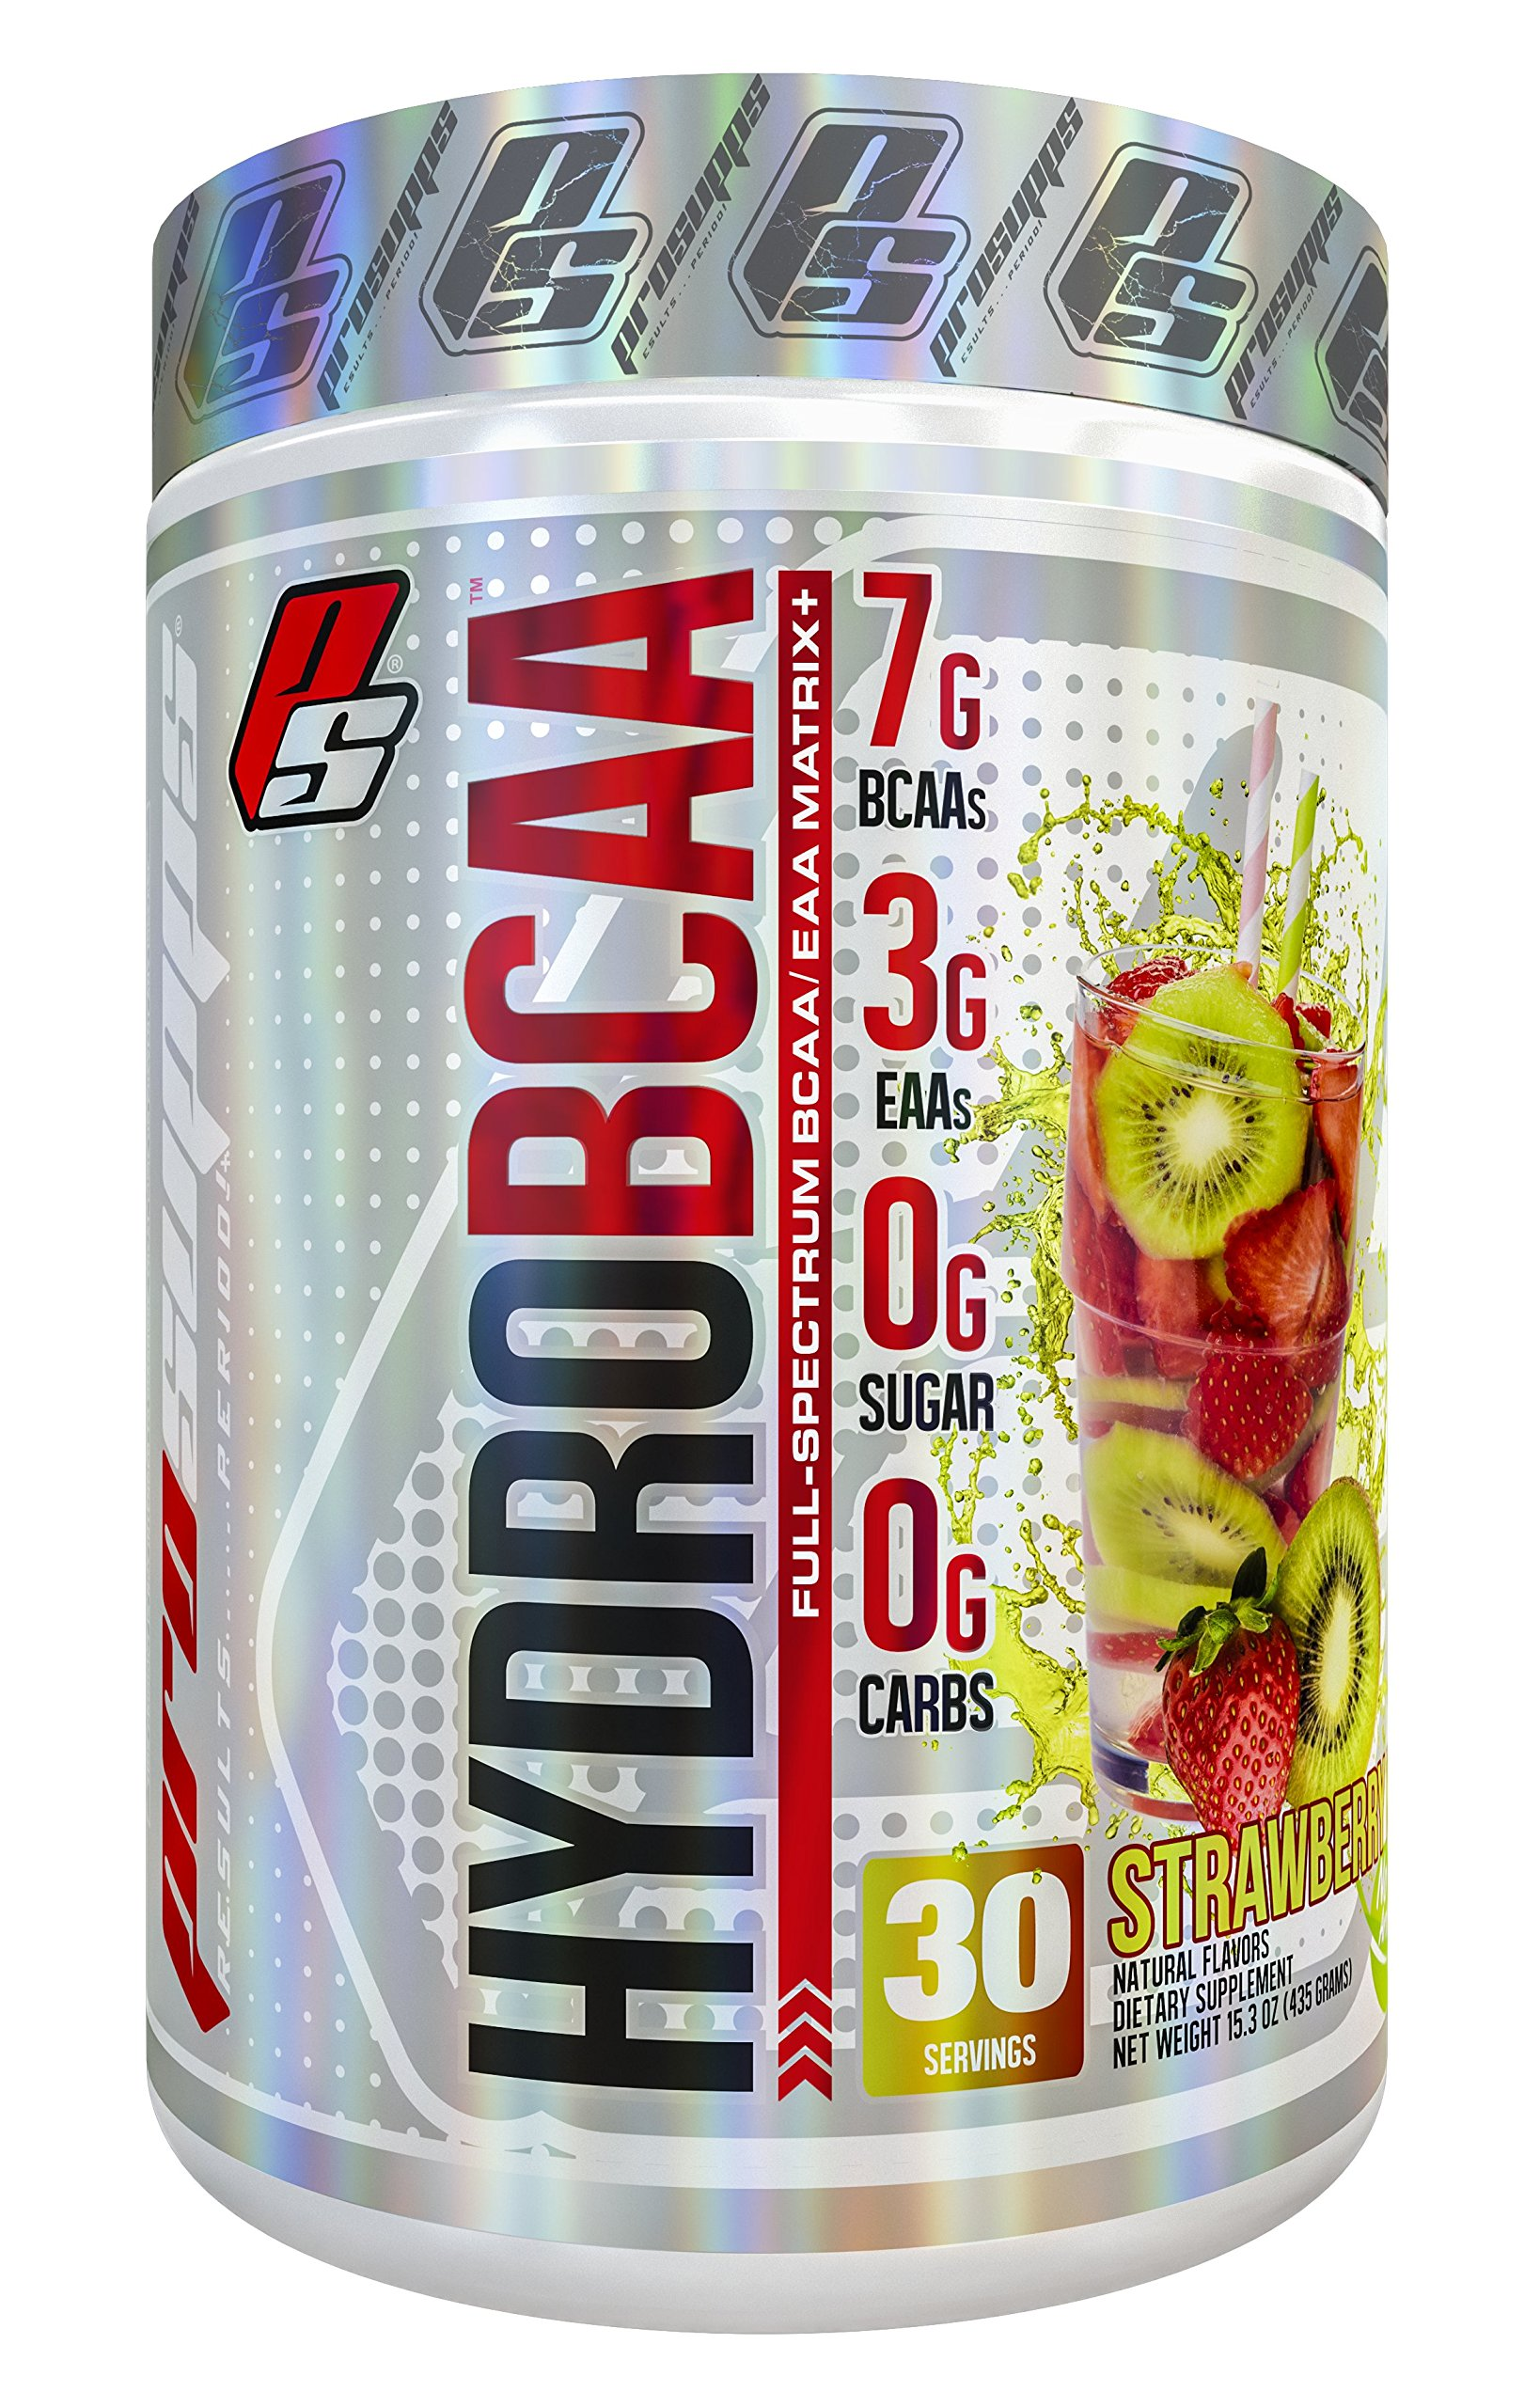 HydroBCAA BCAA/EAA Full Spectrum Matrix, 7g BCAAs, 3g EAAs, 0g Sugar, 0g Ccarbs, 30 servings, 15.3 oz. (Strawberry Kiwi Flavor)